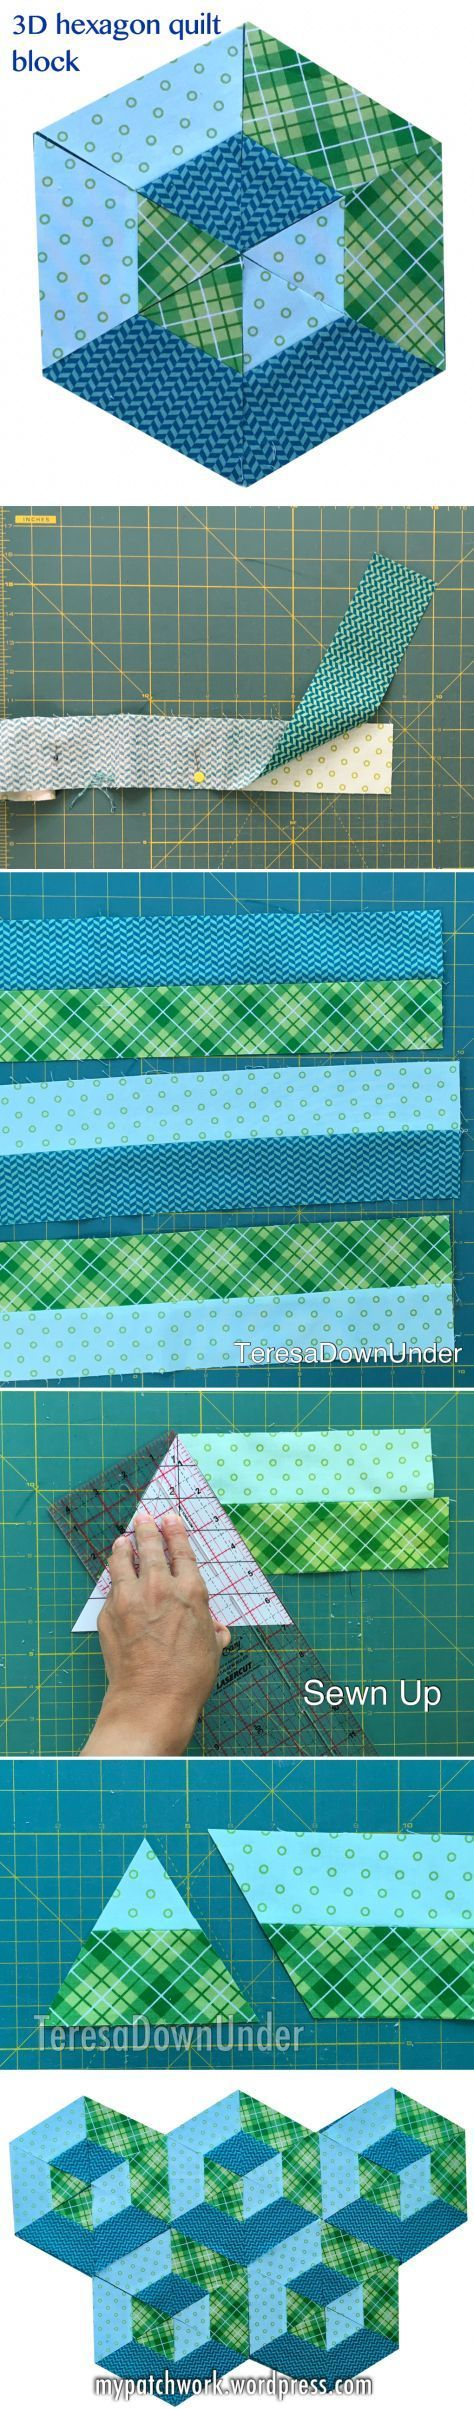 1970 best Patchwork images on Pinterest | Bedspreads, Comforters and ...